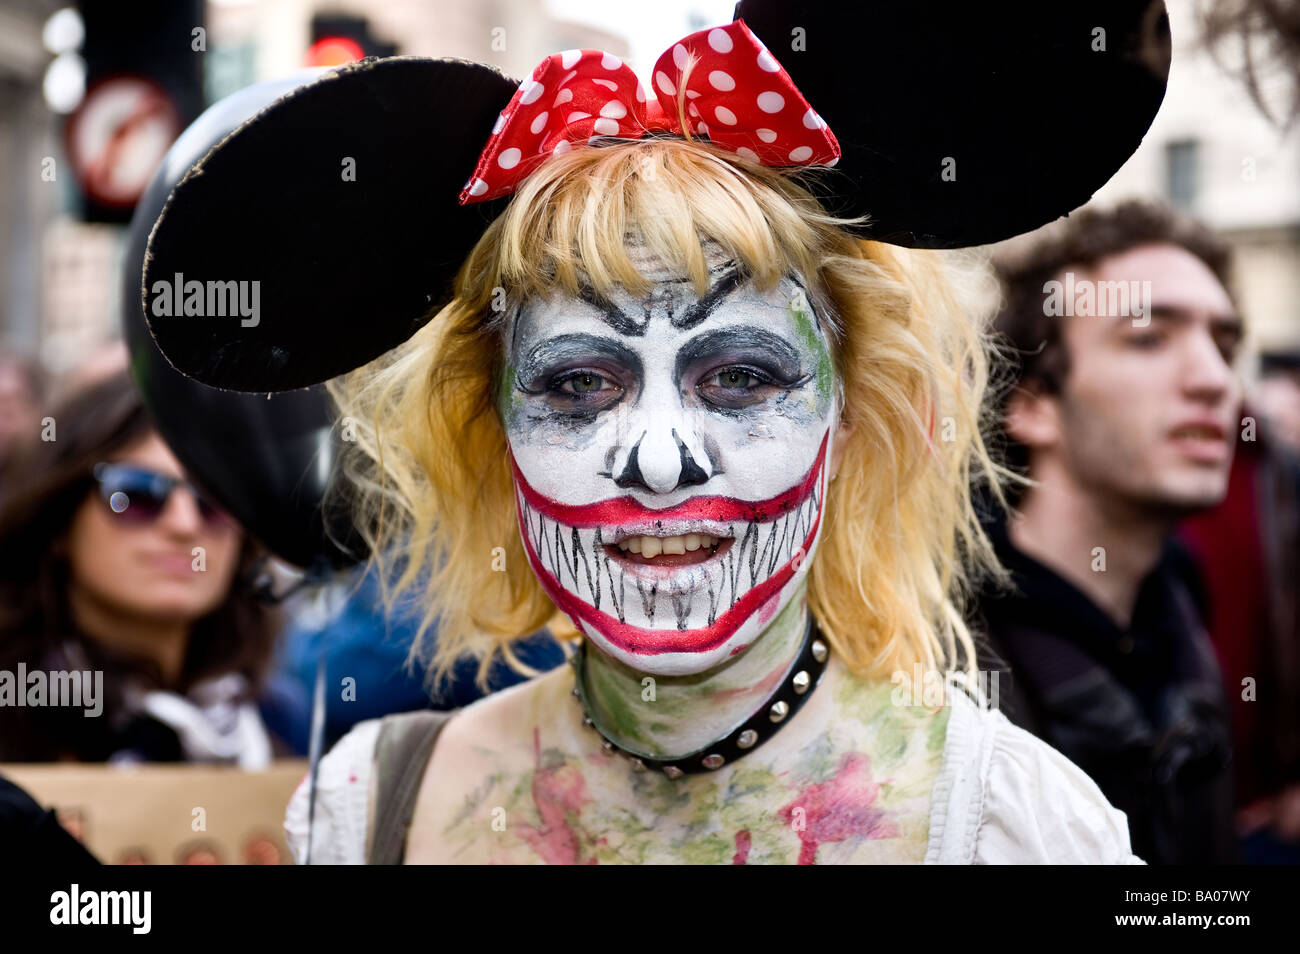 Protester at the G20 demonstration in the City of London. - Stock Image